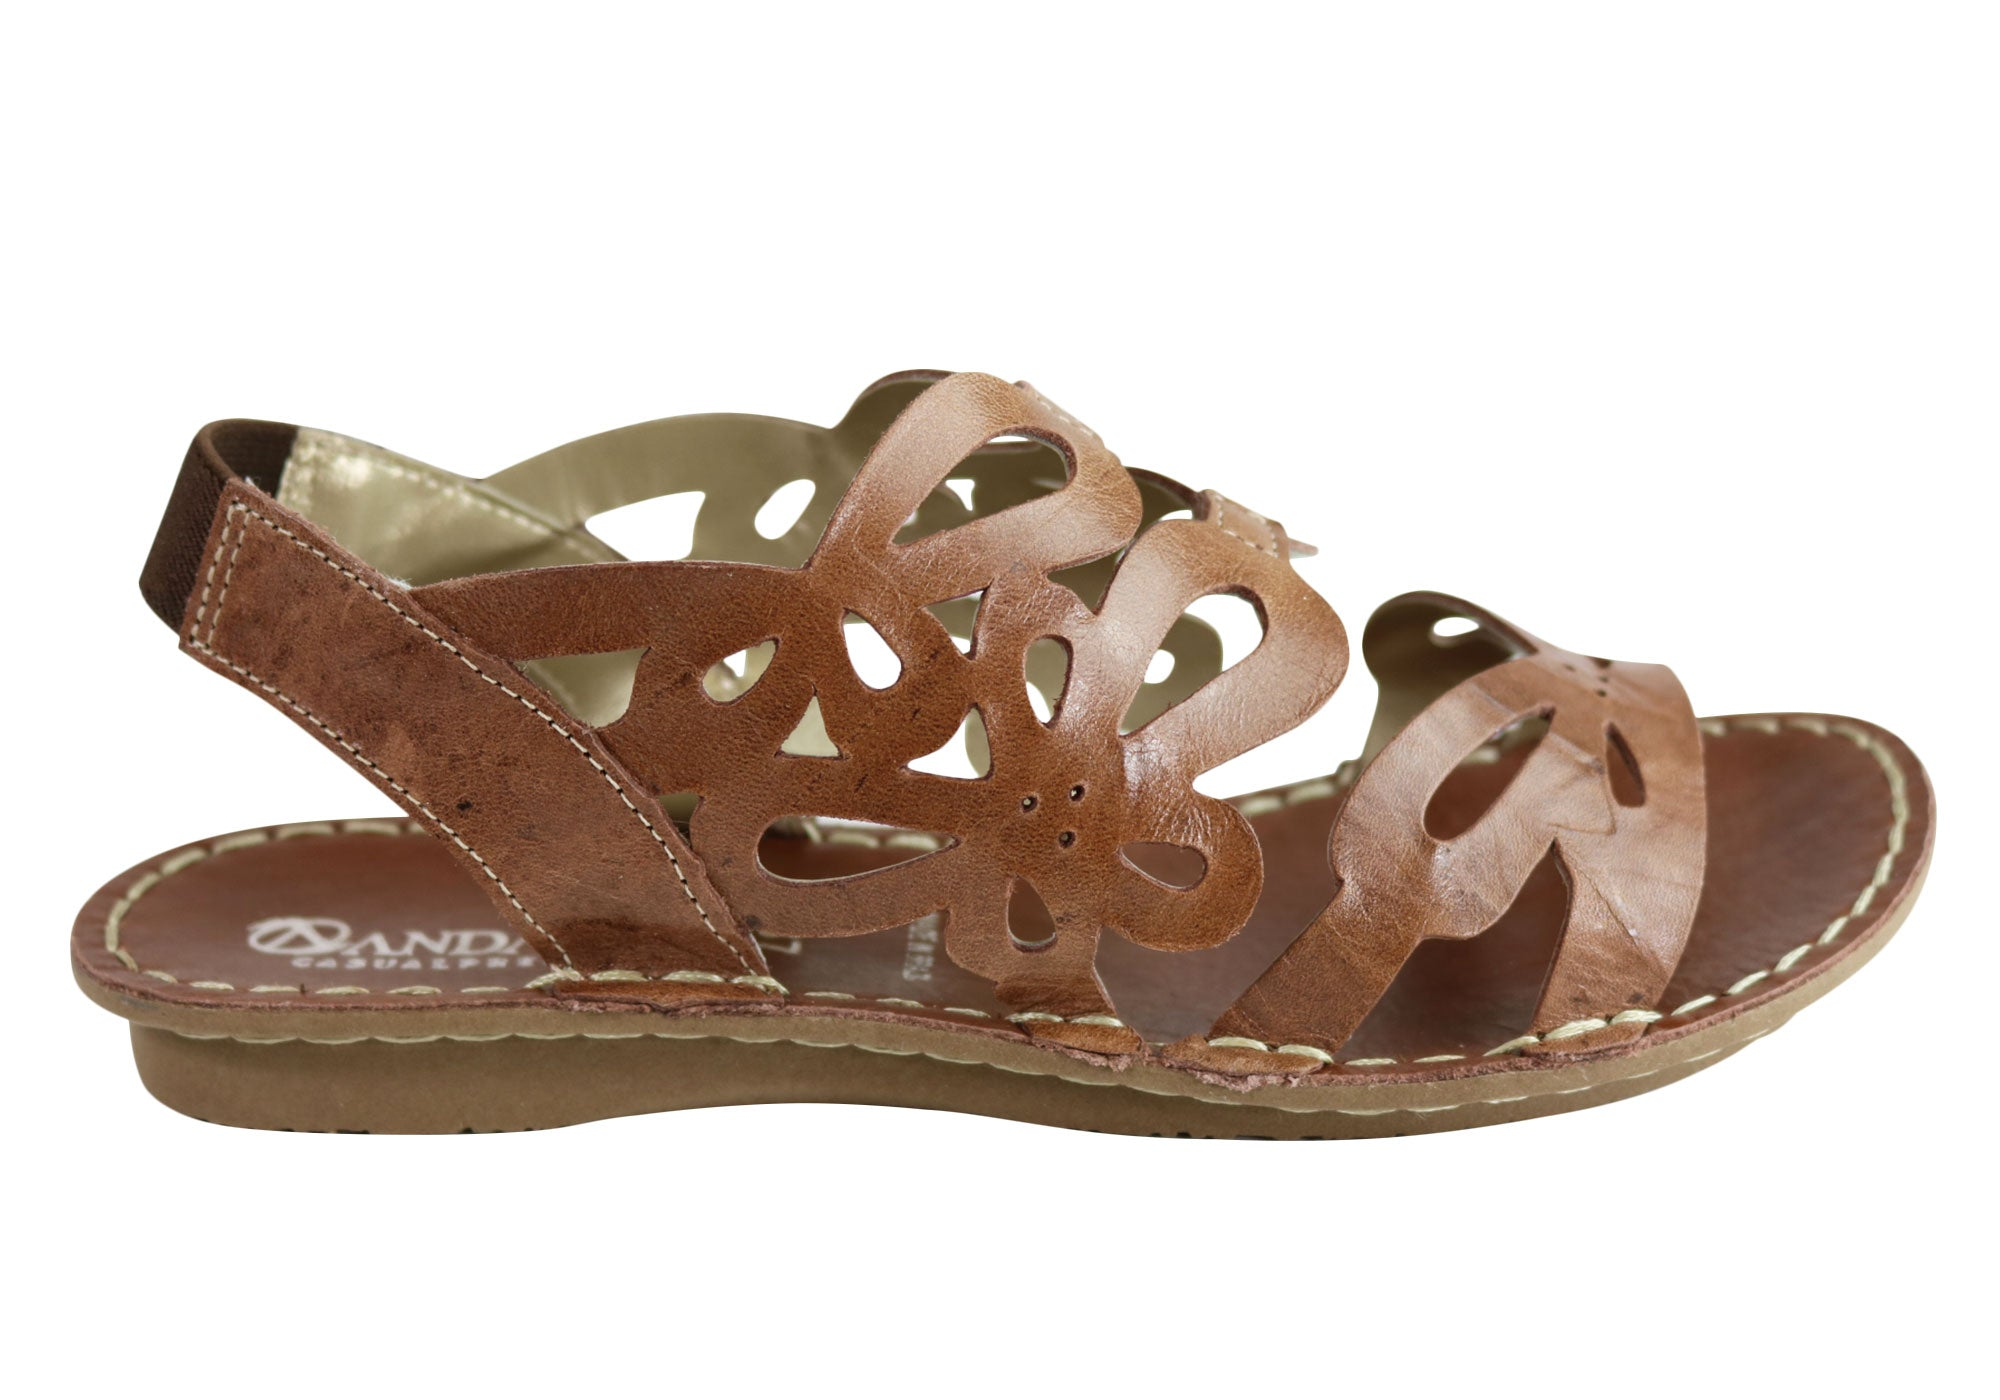 NEW-ANDACCO-DESIREE-WOMENS-COMFORTABLE-FLAT-LEATHER-SANDALS-MADE-IN-BRAZIL